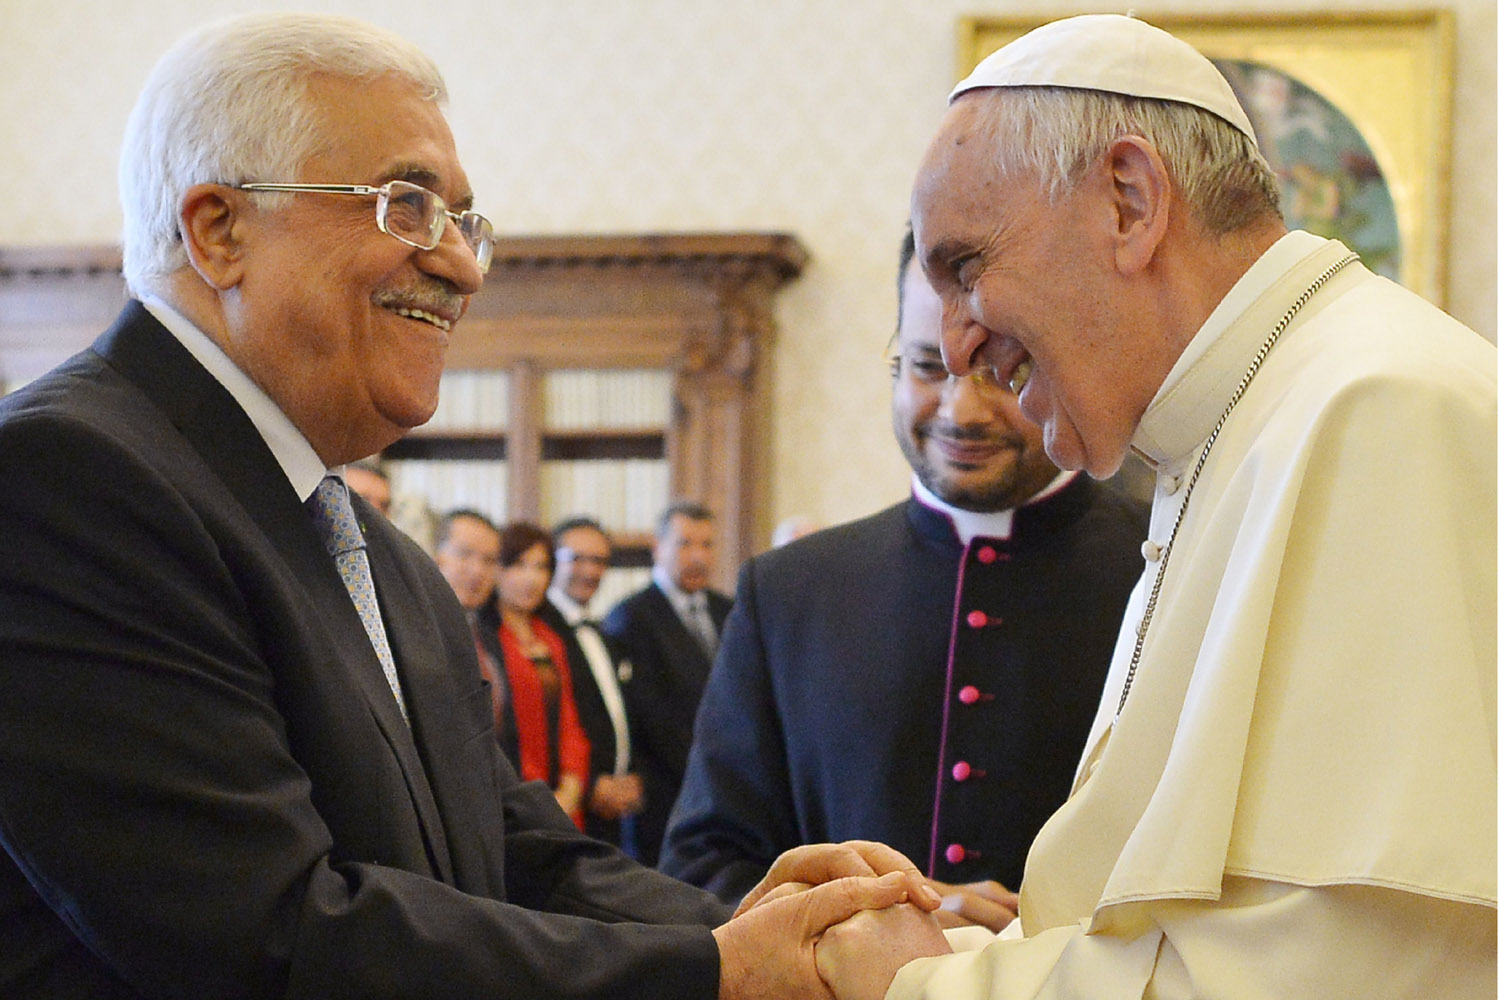 Pope Francis (R) shakes hands with Palestinian authority President Mahmud Abbas (L) after they exchanged gifts during a private audience on May 16, 2015 in Vatican.  AFP PHOTO POOL / ALBERTO PIZZOLIALBERTO PIZZOLI/AFP/Getty Images